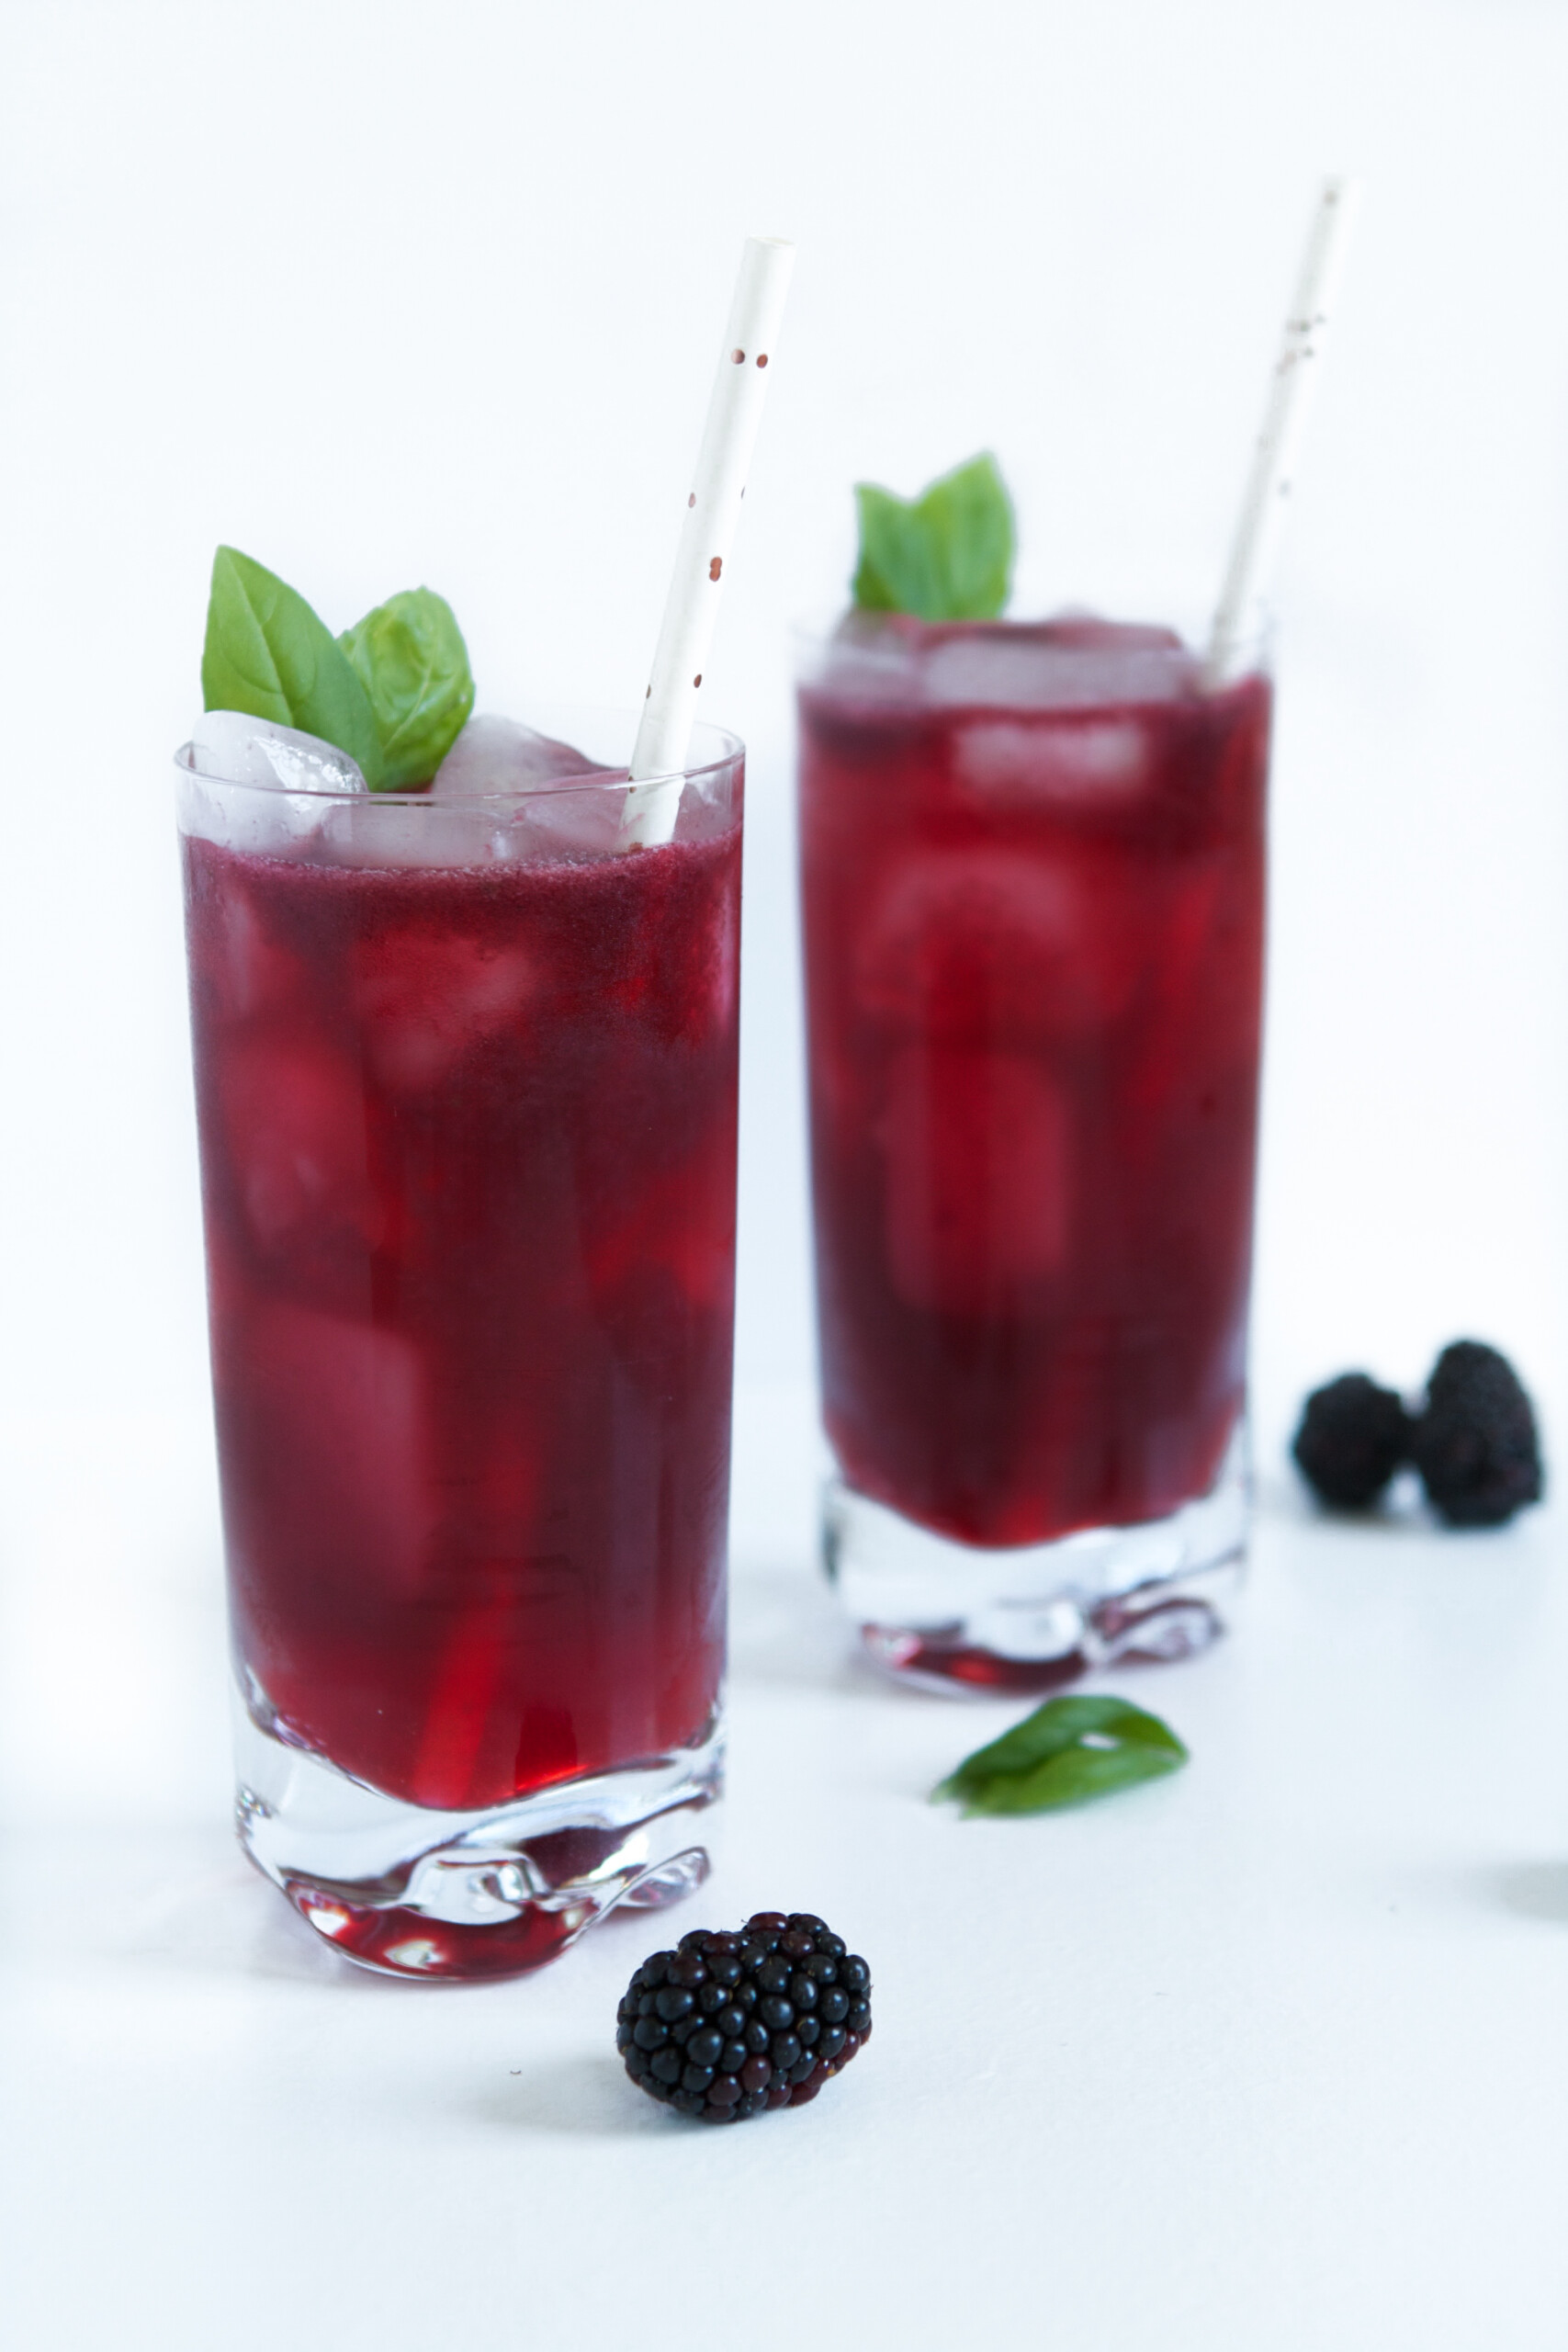 Muddle blackberries and sugar in a cocktail shaker. Add basil and lightly muddle until fragrant. Add gin and lemon juice then fill shaker with ice, secure lid, and shake vigorously until thoroughly chilled. Strain into a Collins glass filled with ice and top off with chilled club soda. Garnish with blackberries and basil leaves.